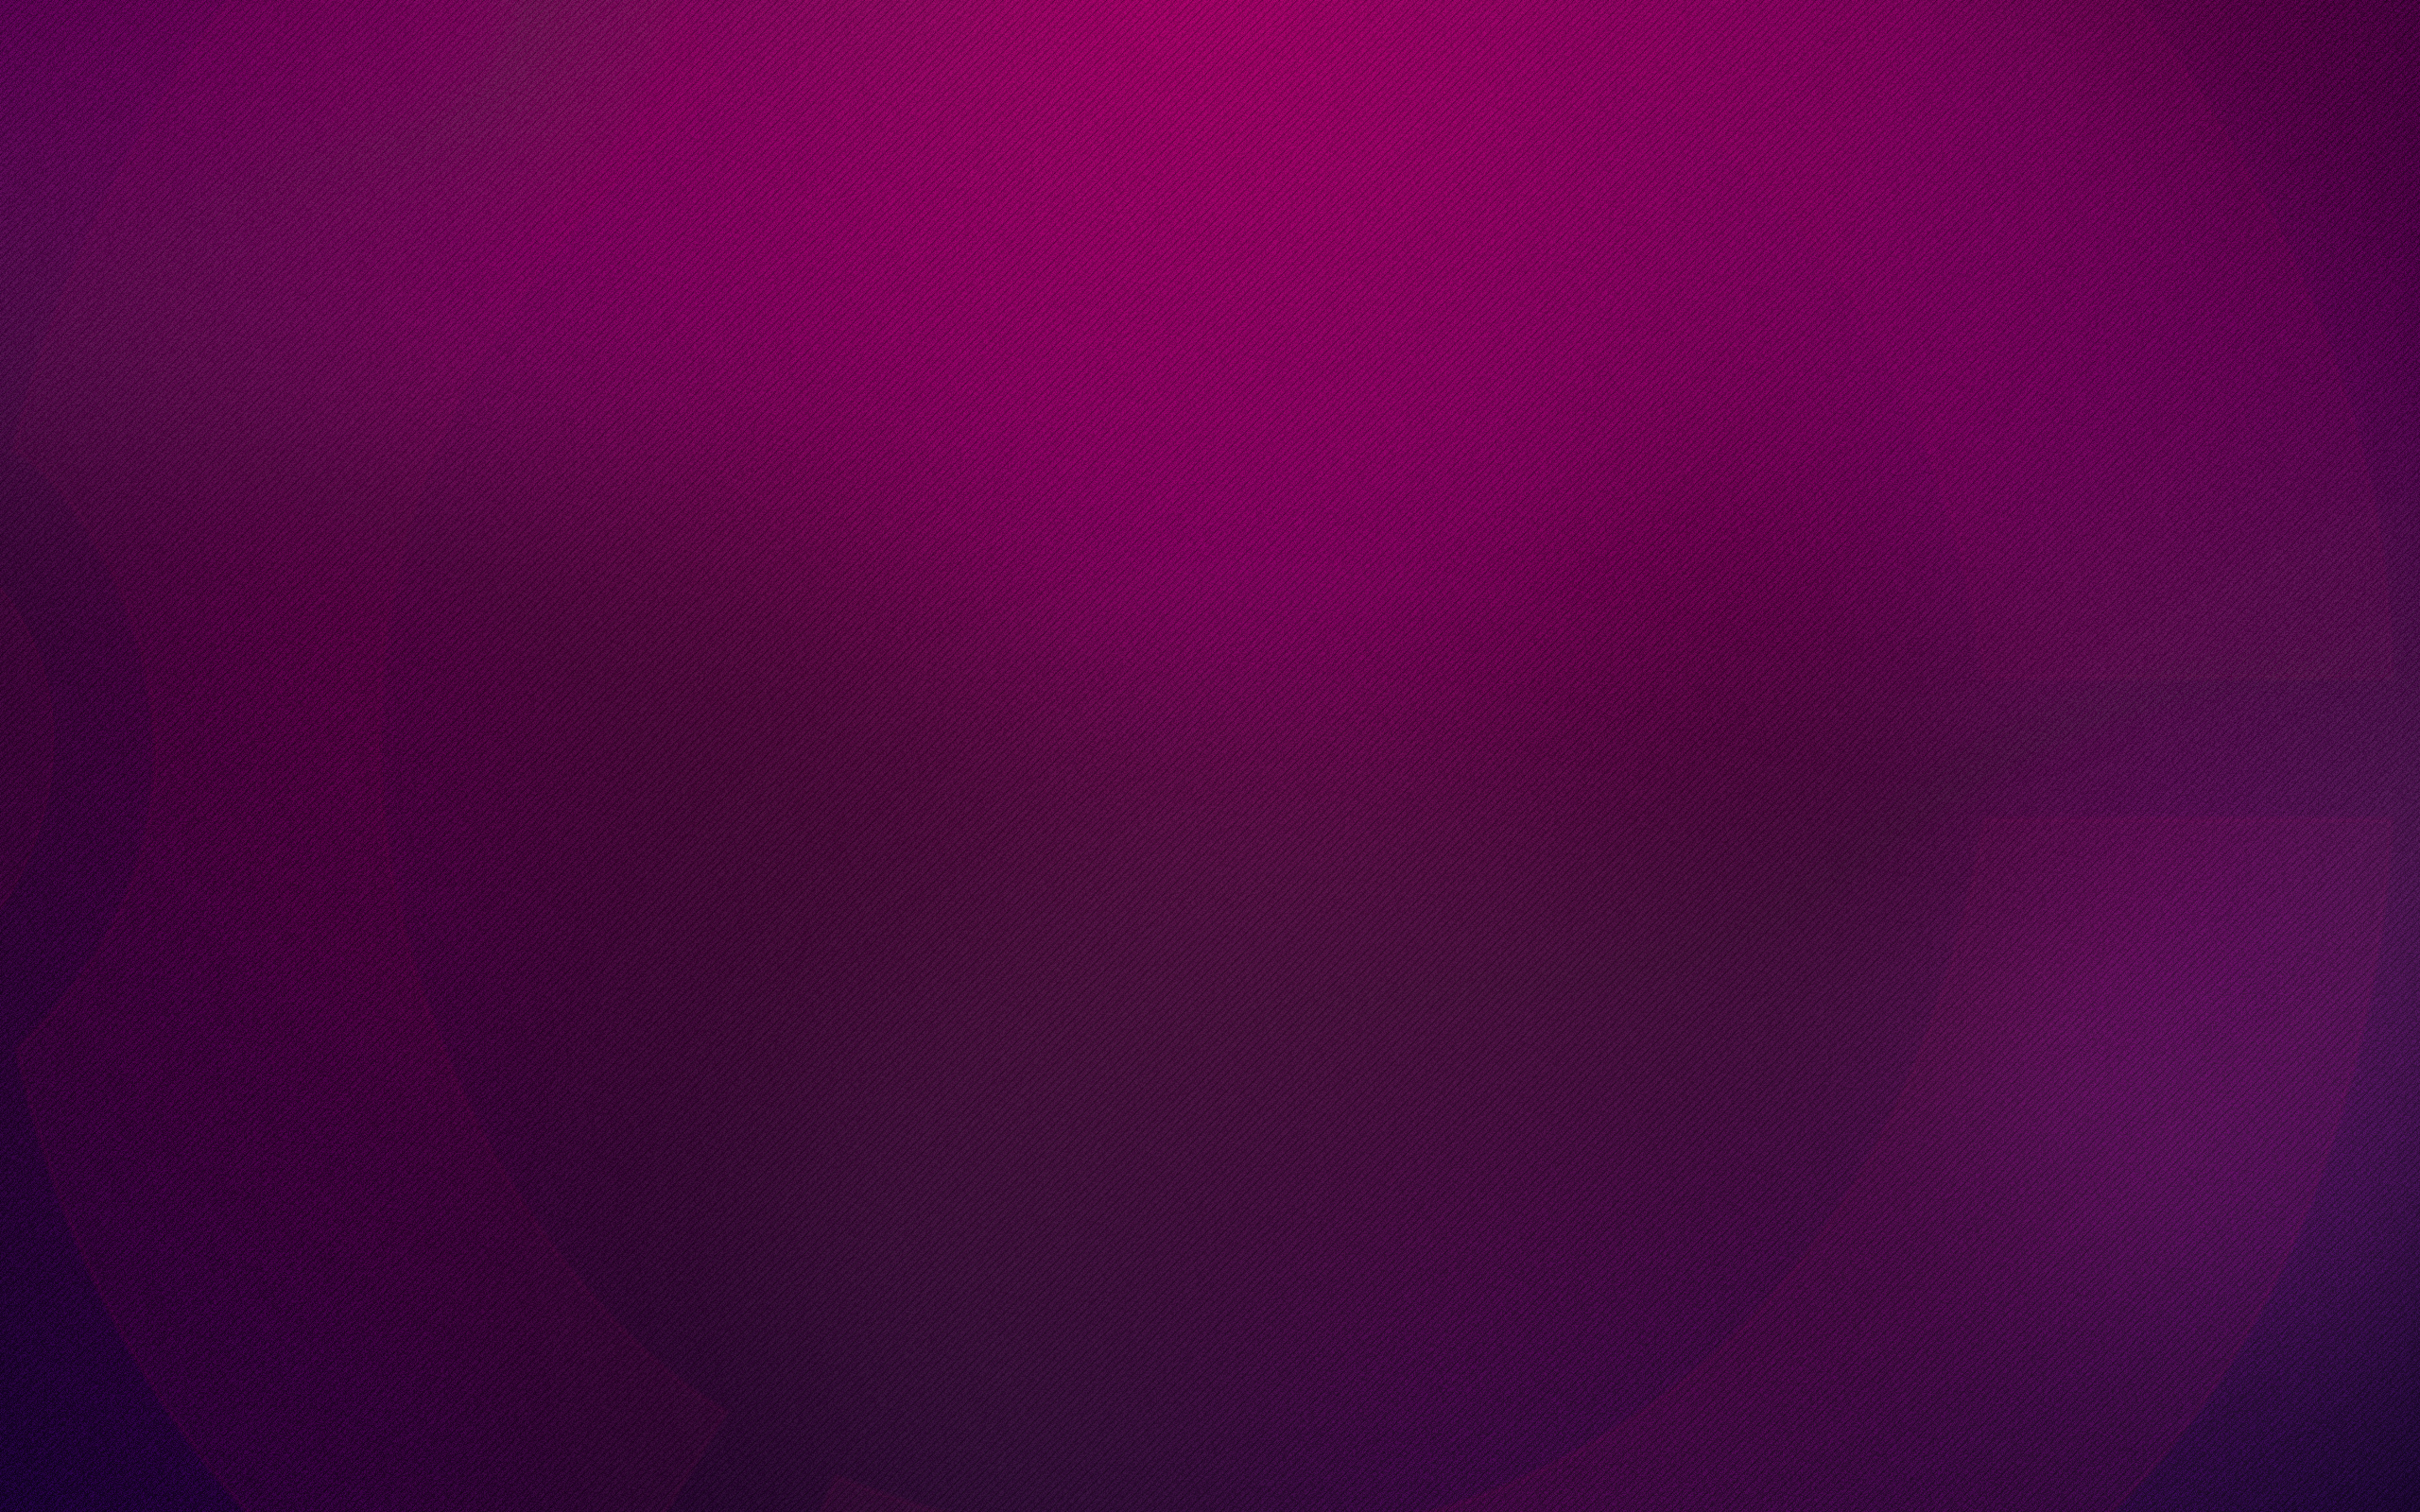 Magenta Background